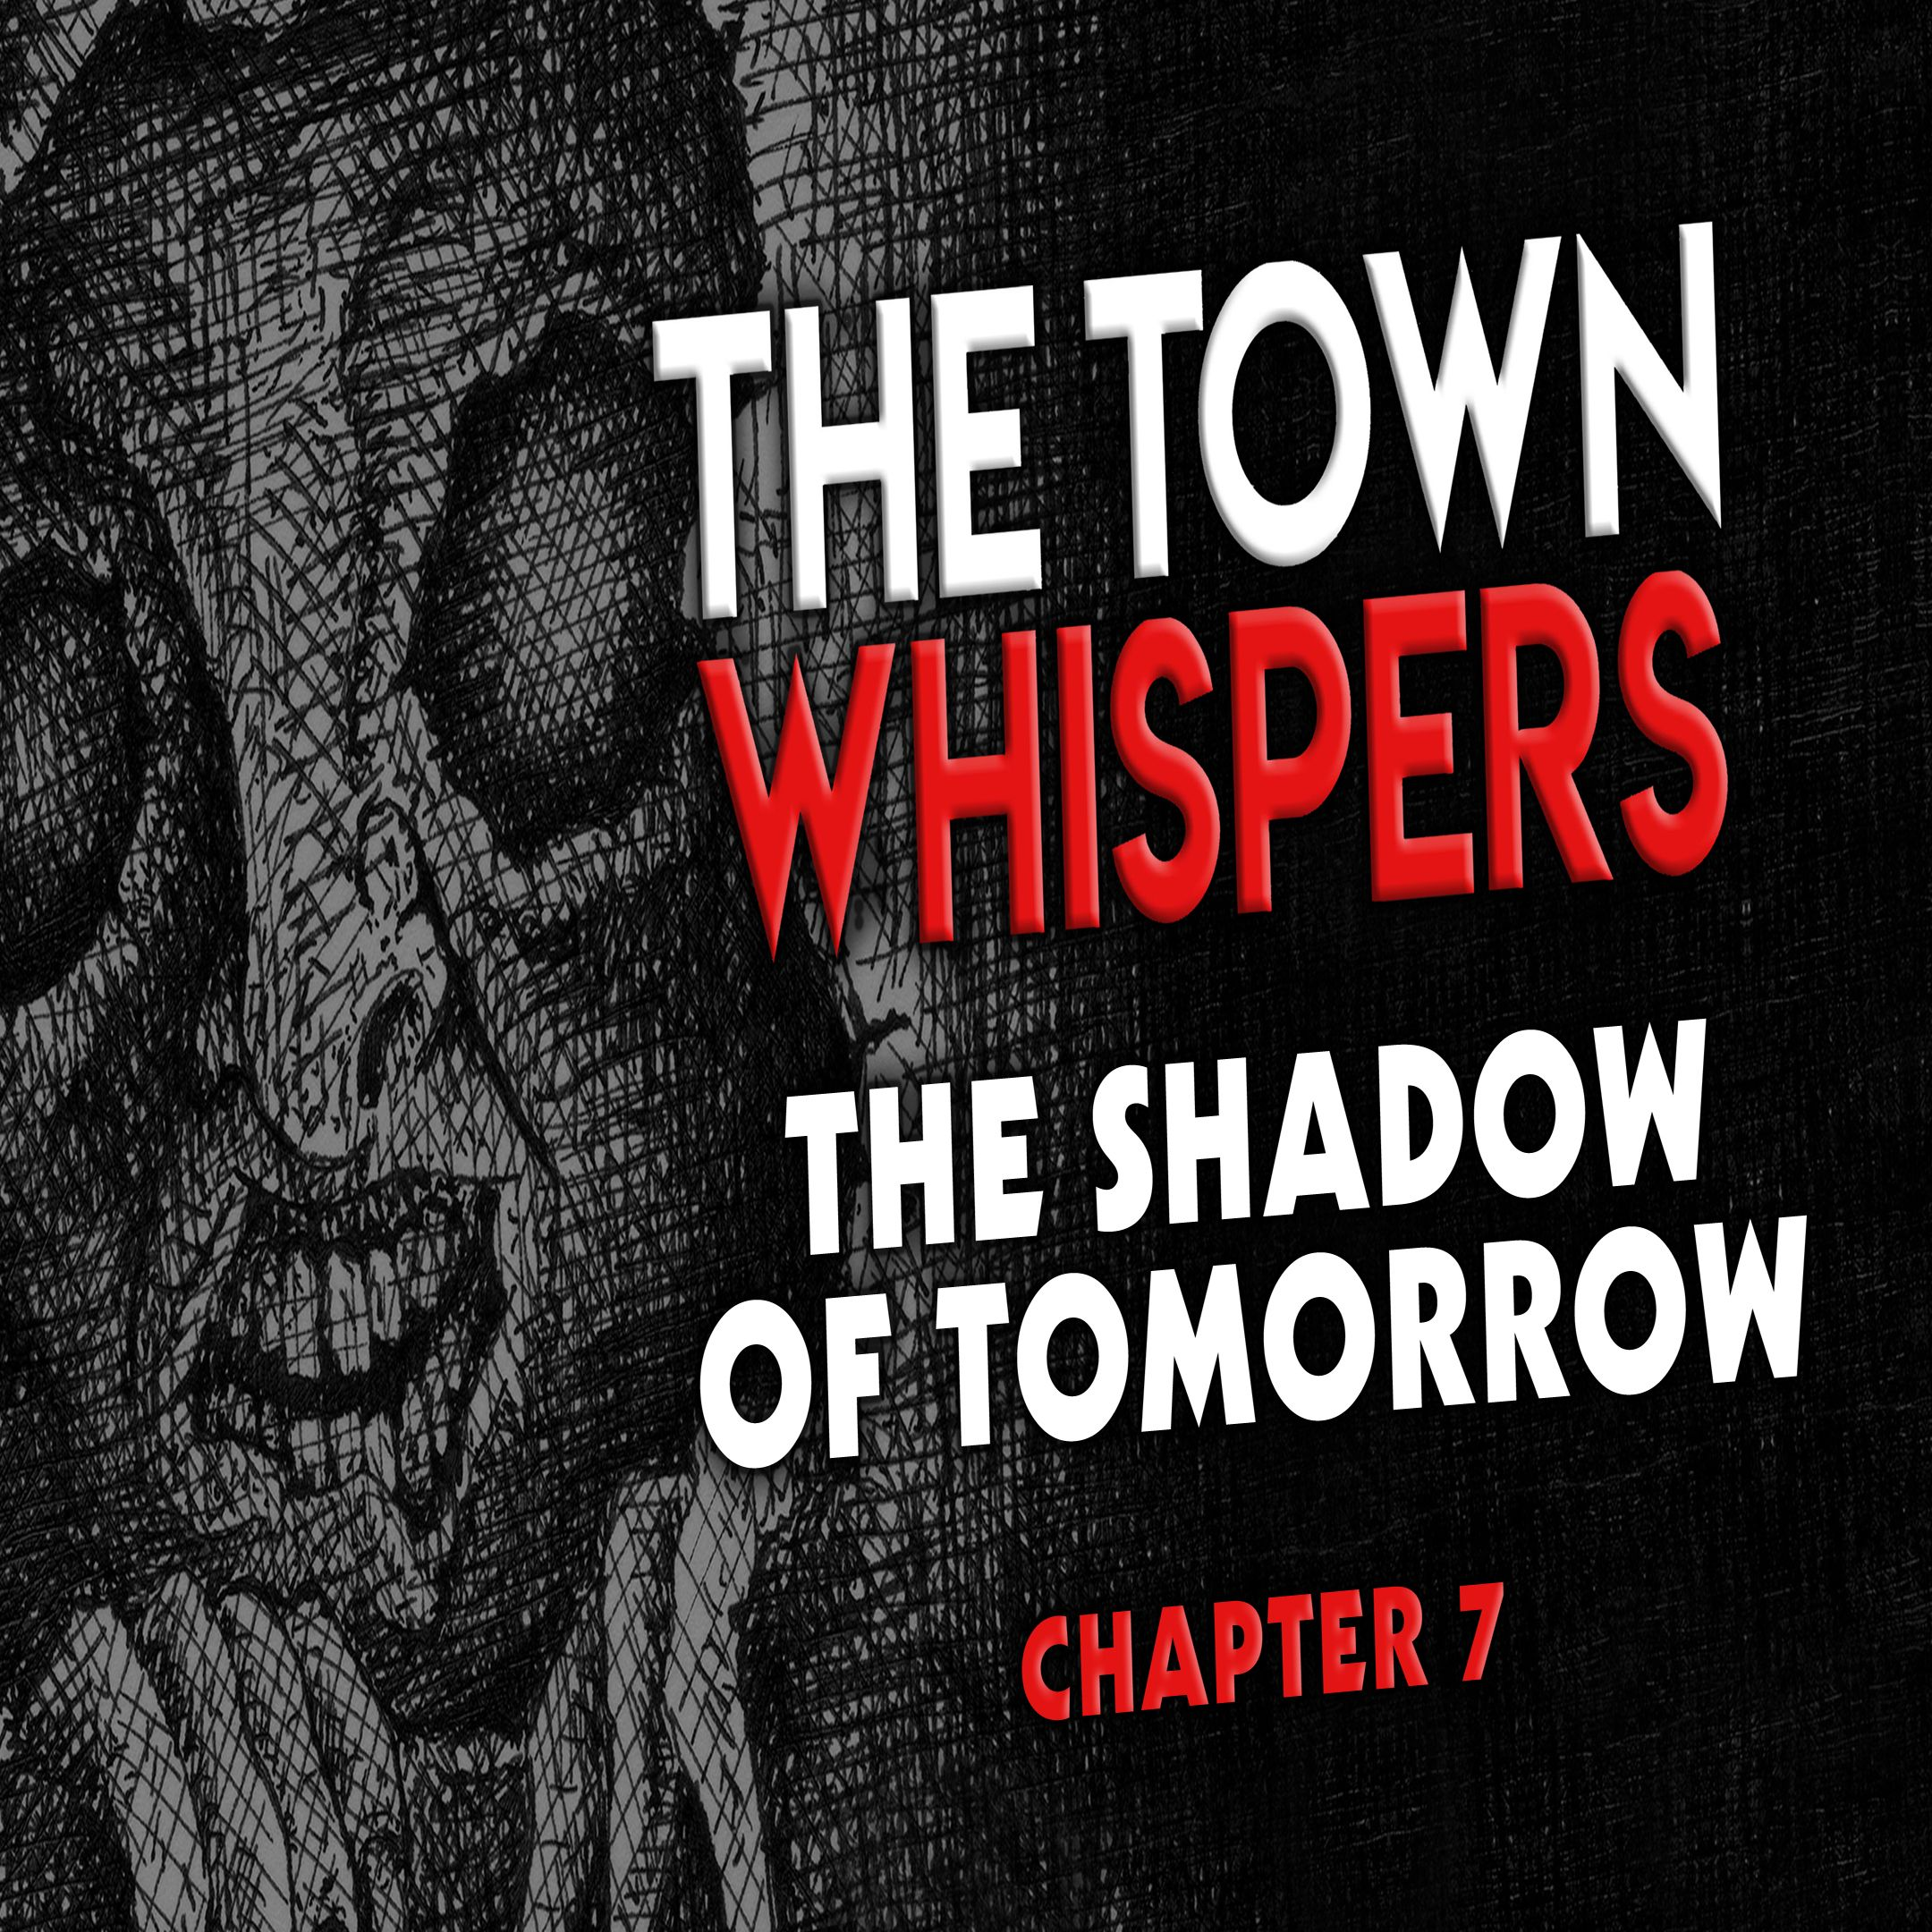 Chapter 7: The Shadow of Tomorrow